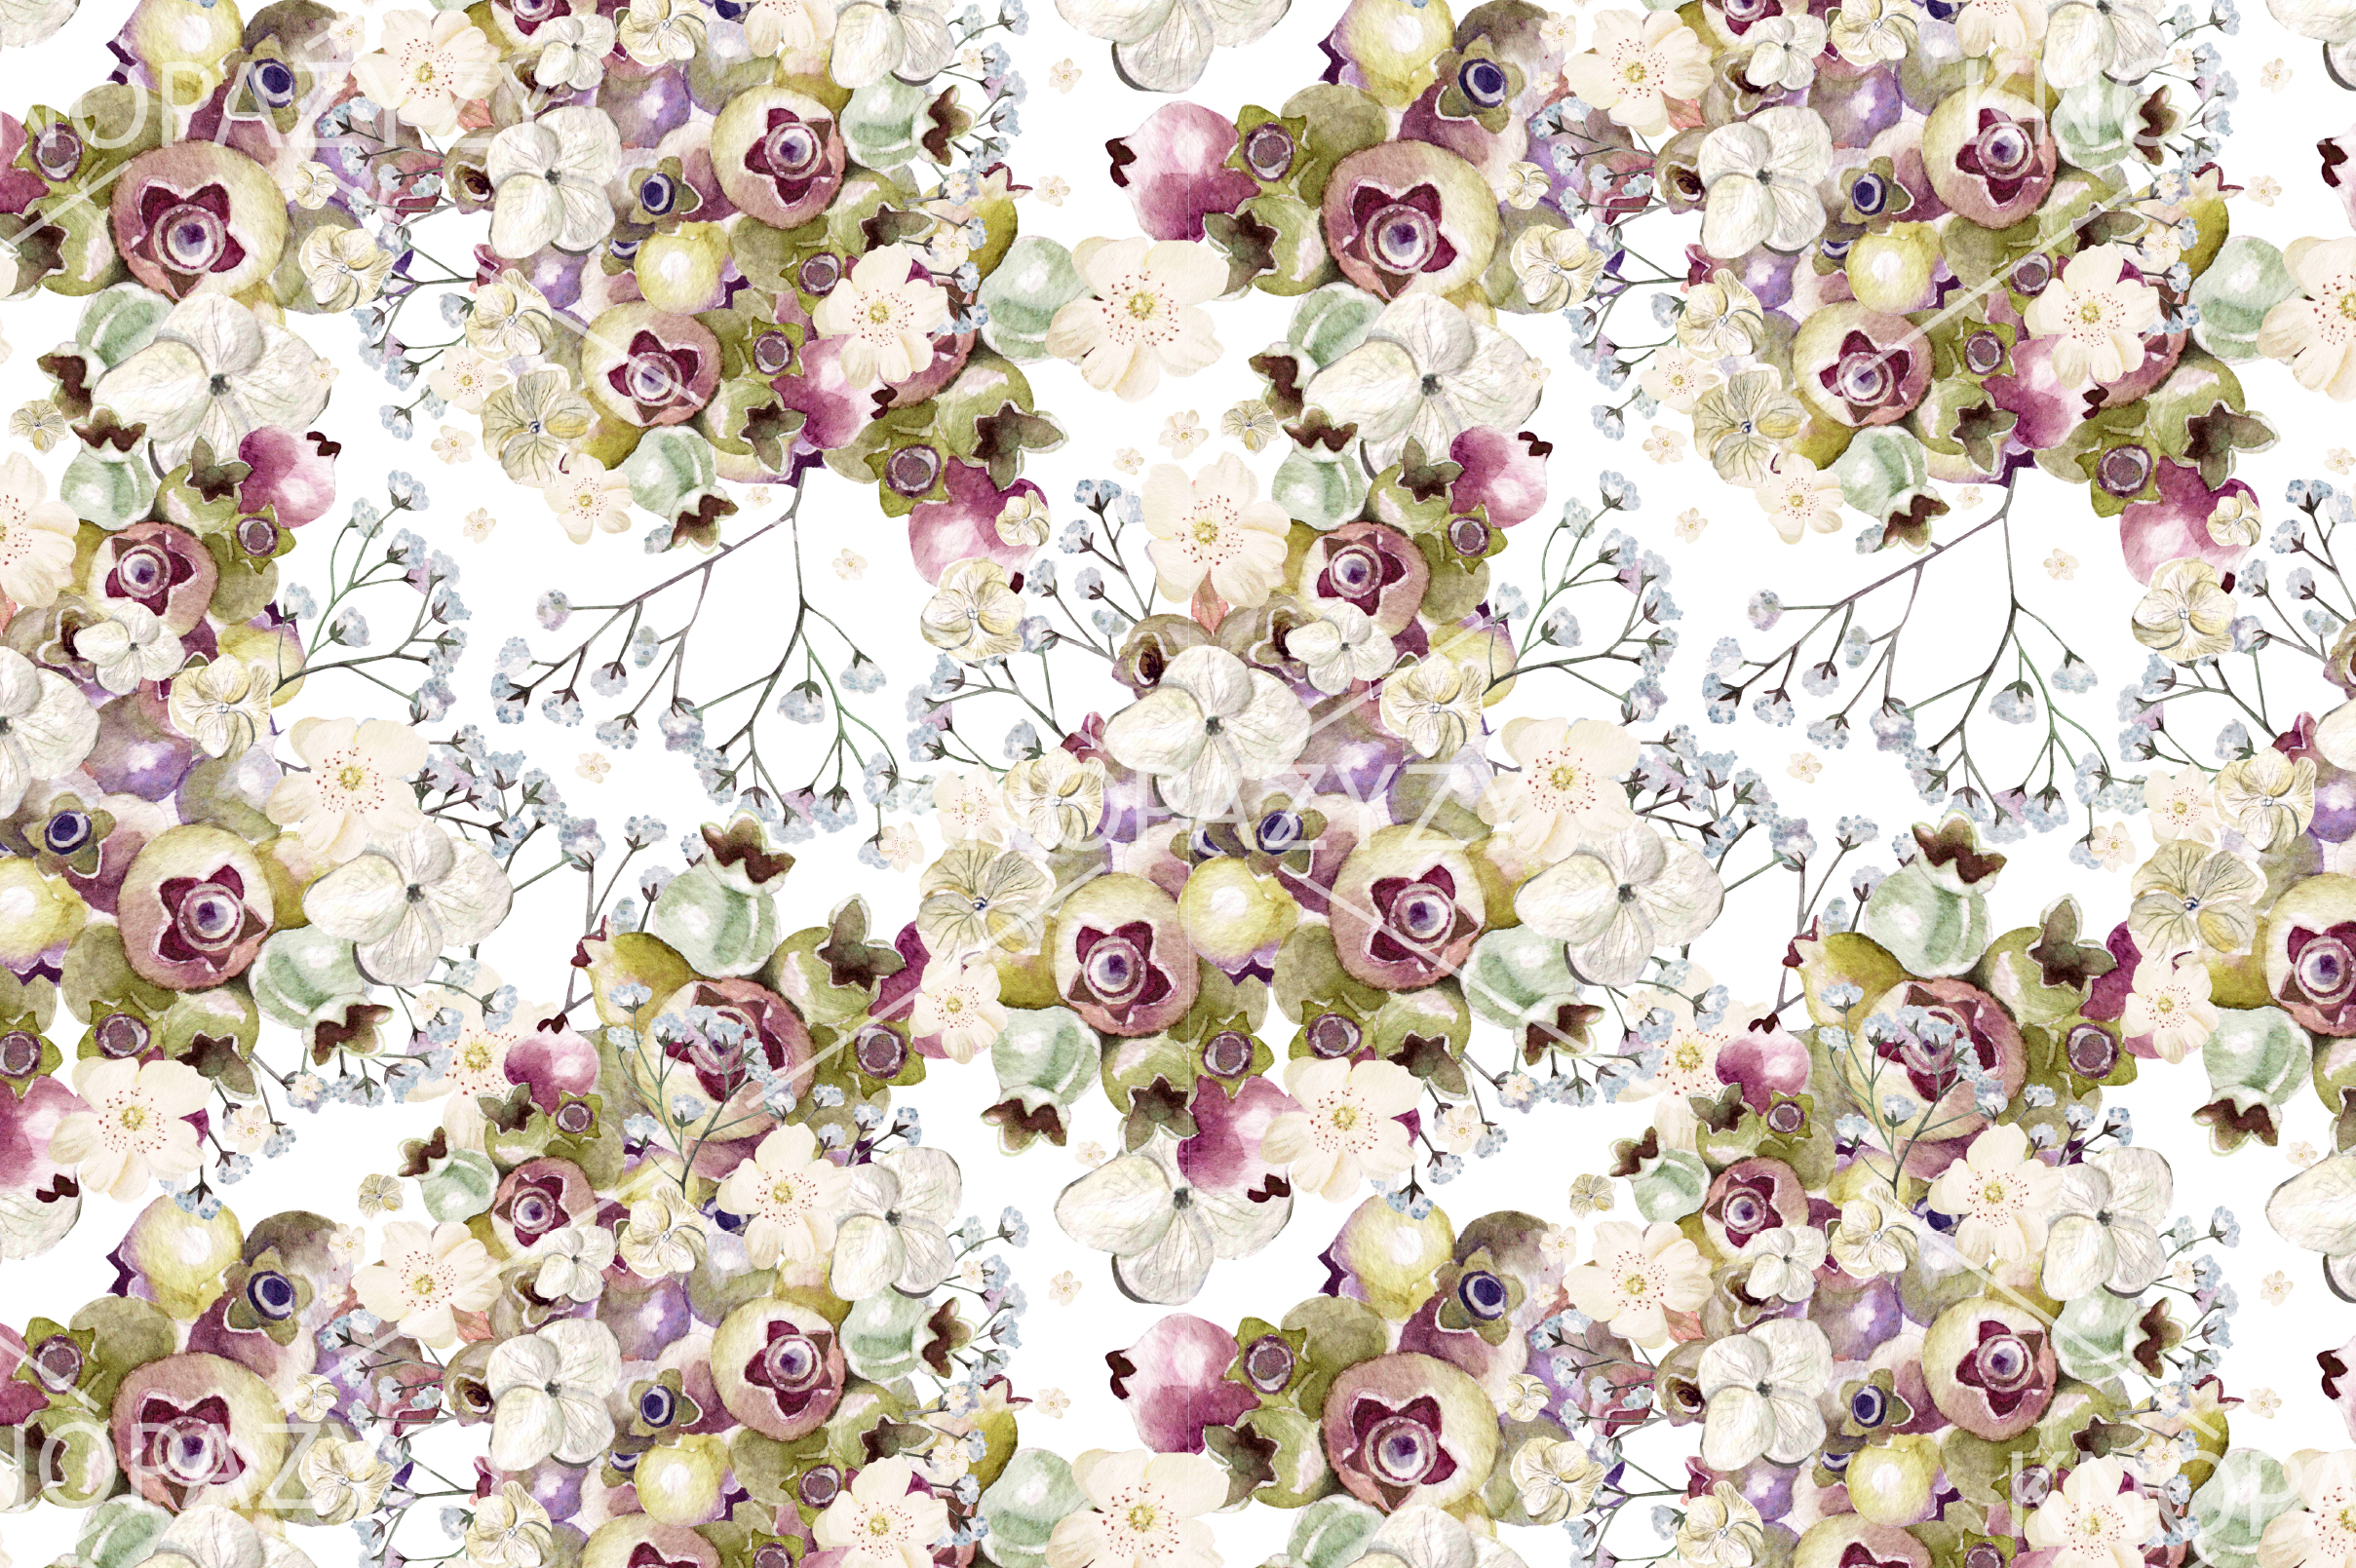 6 Hand Drawn Watercolor PATTERNS example image 4